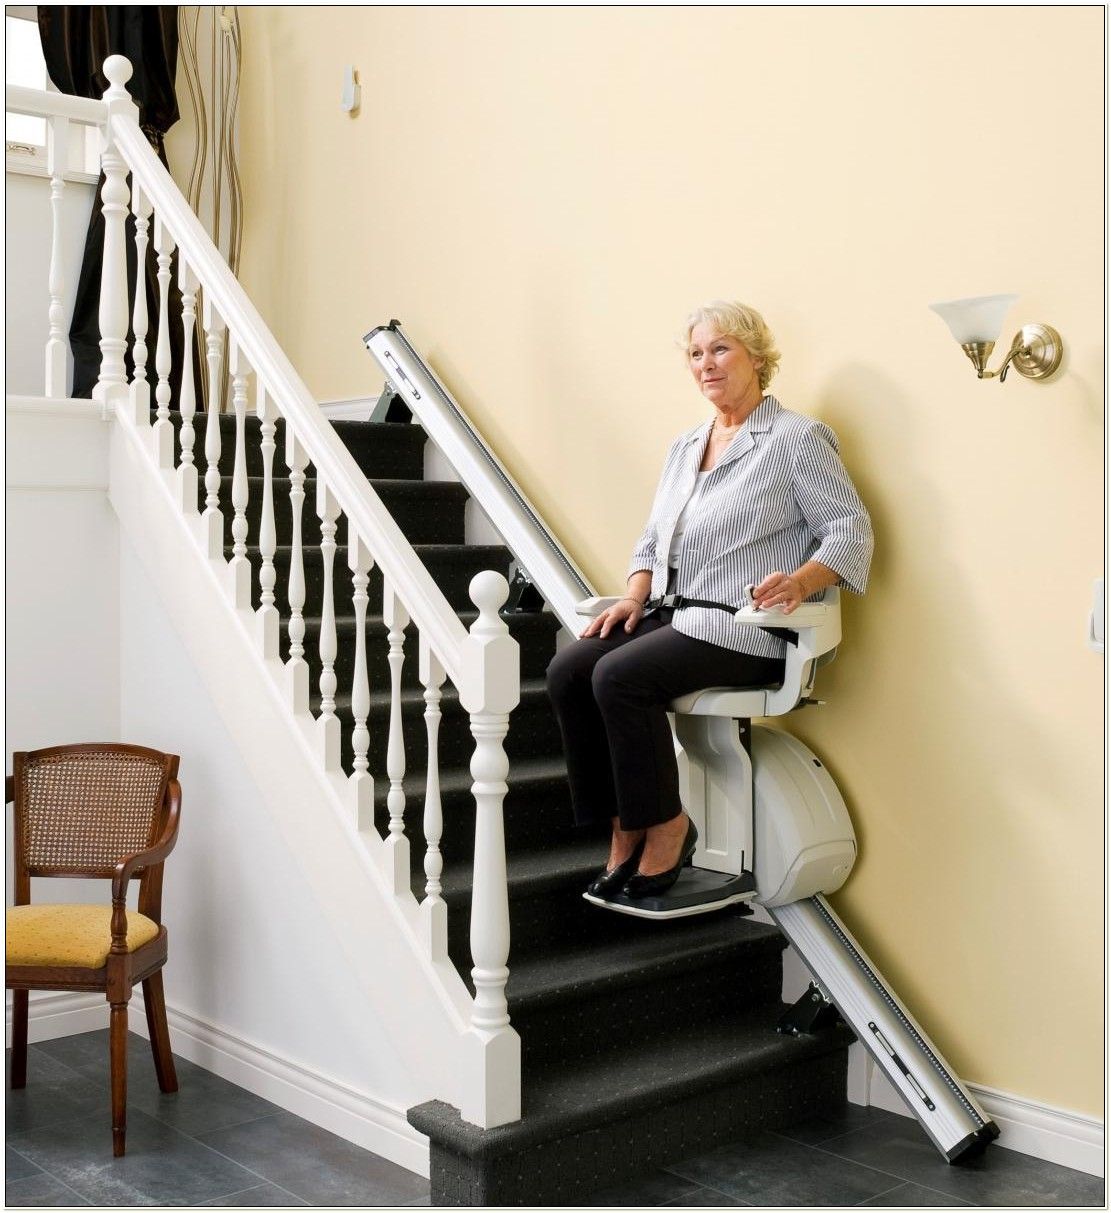 Automatic Stair Lifts For Stairs